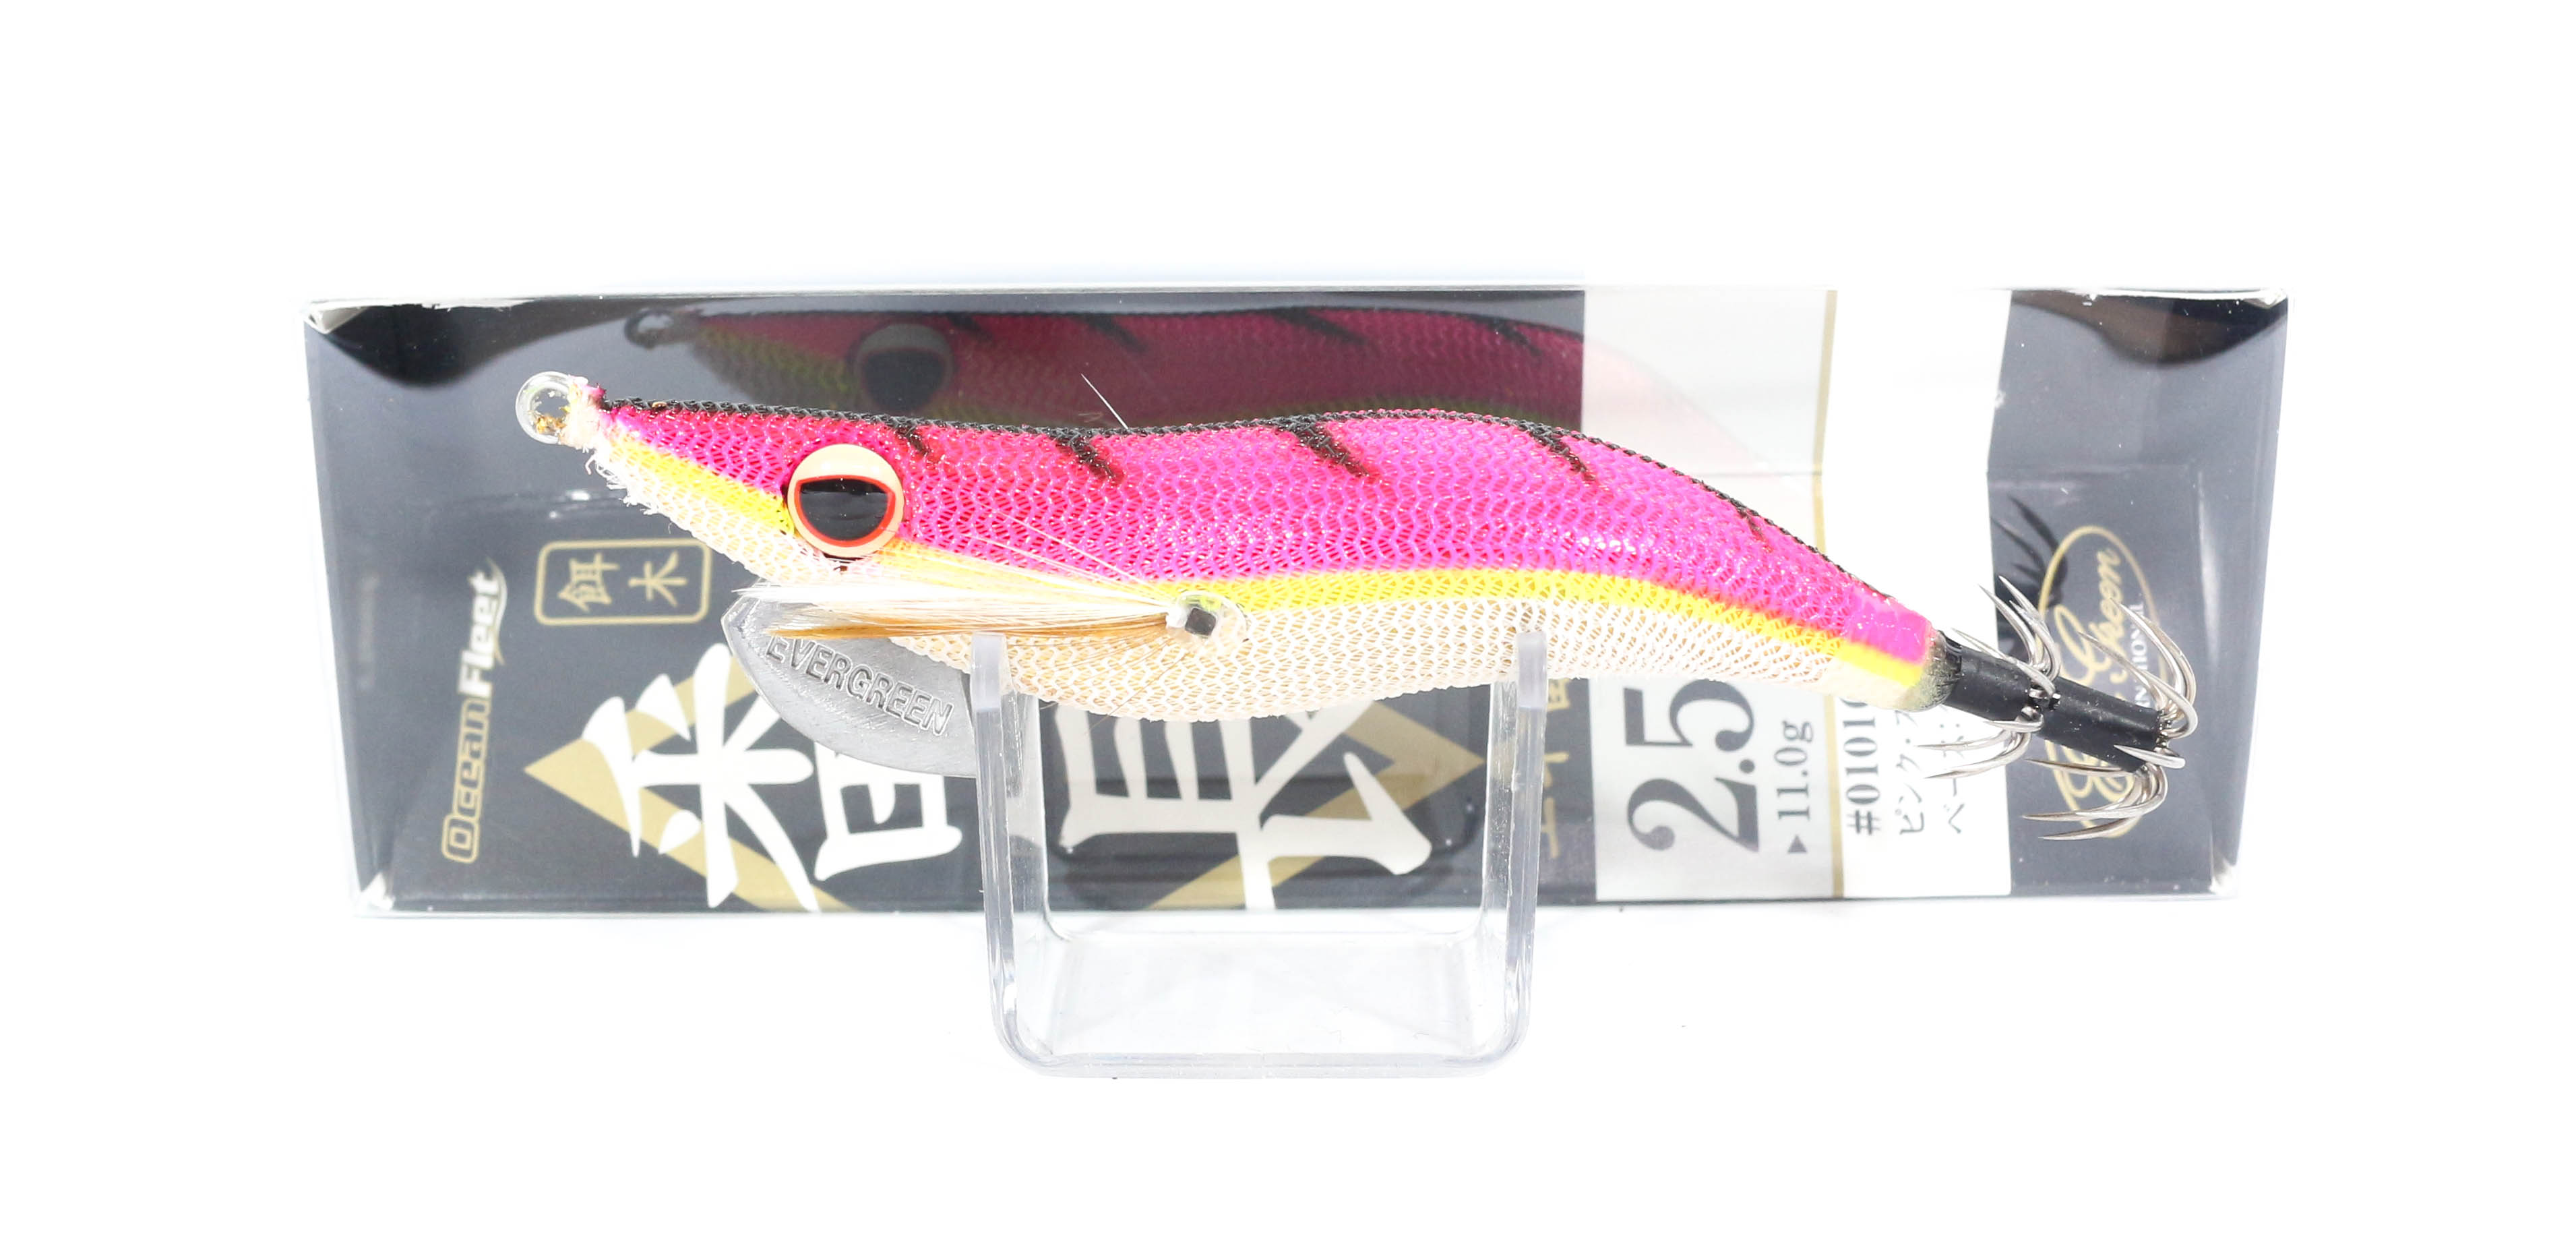 Evergreen Ocean Fleet Custom Squid Jig Lure 2.5 0101G (9230)